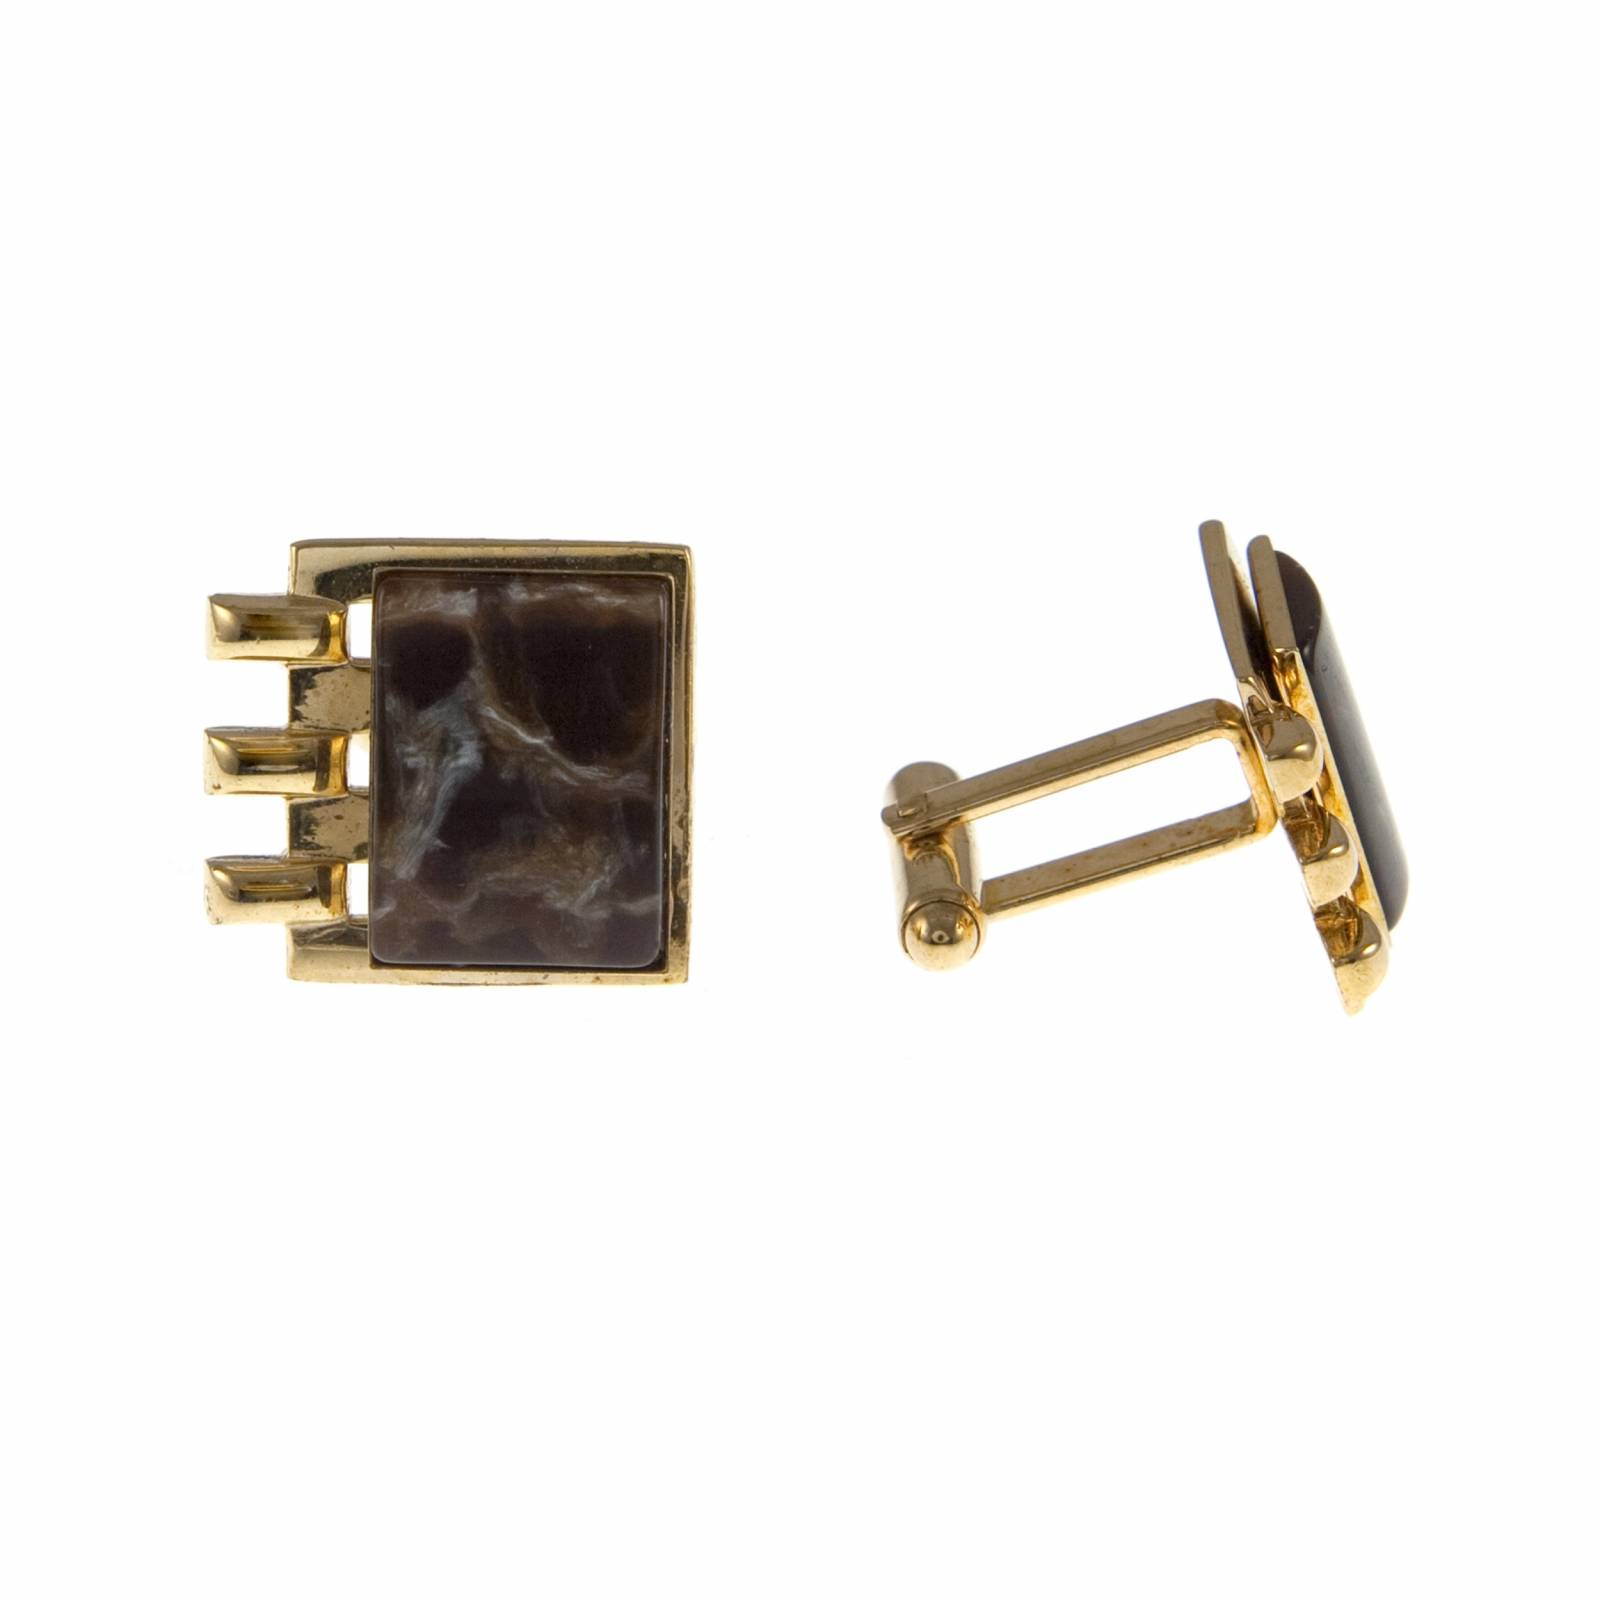 Vintage 1940s Square Gold Plated Cufflinks With Bakelite Stone thumbnails